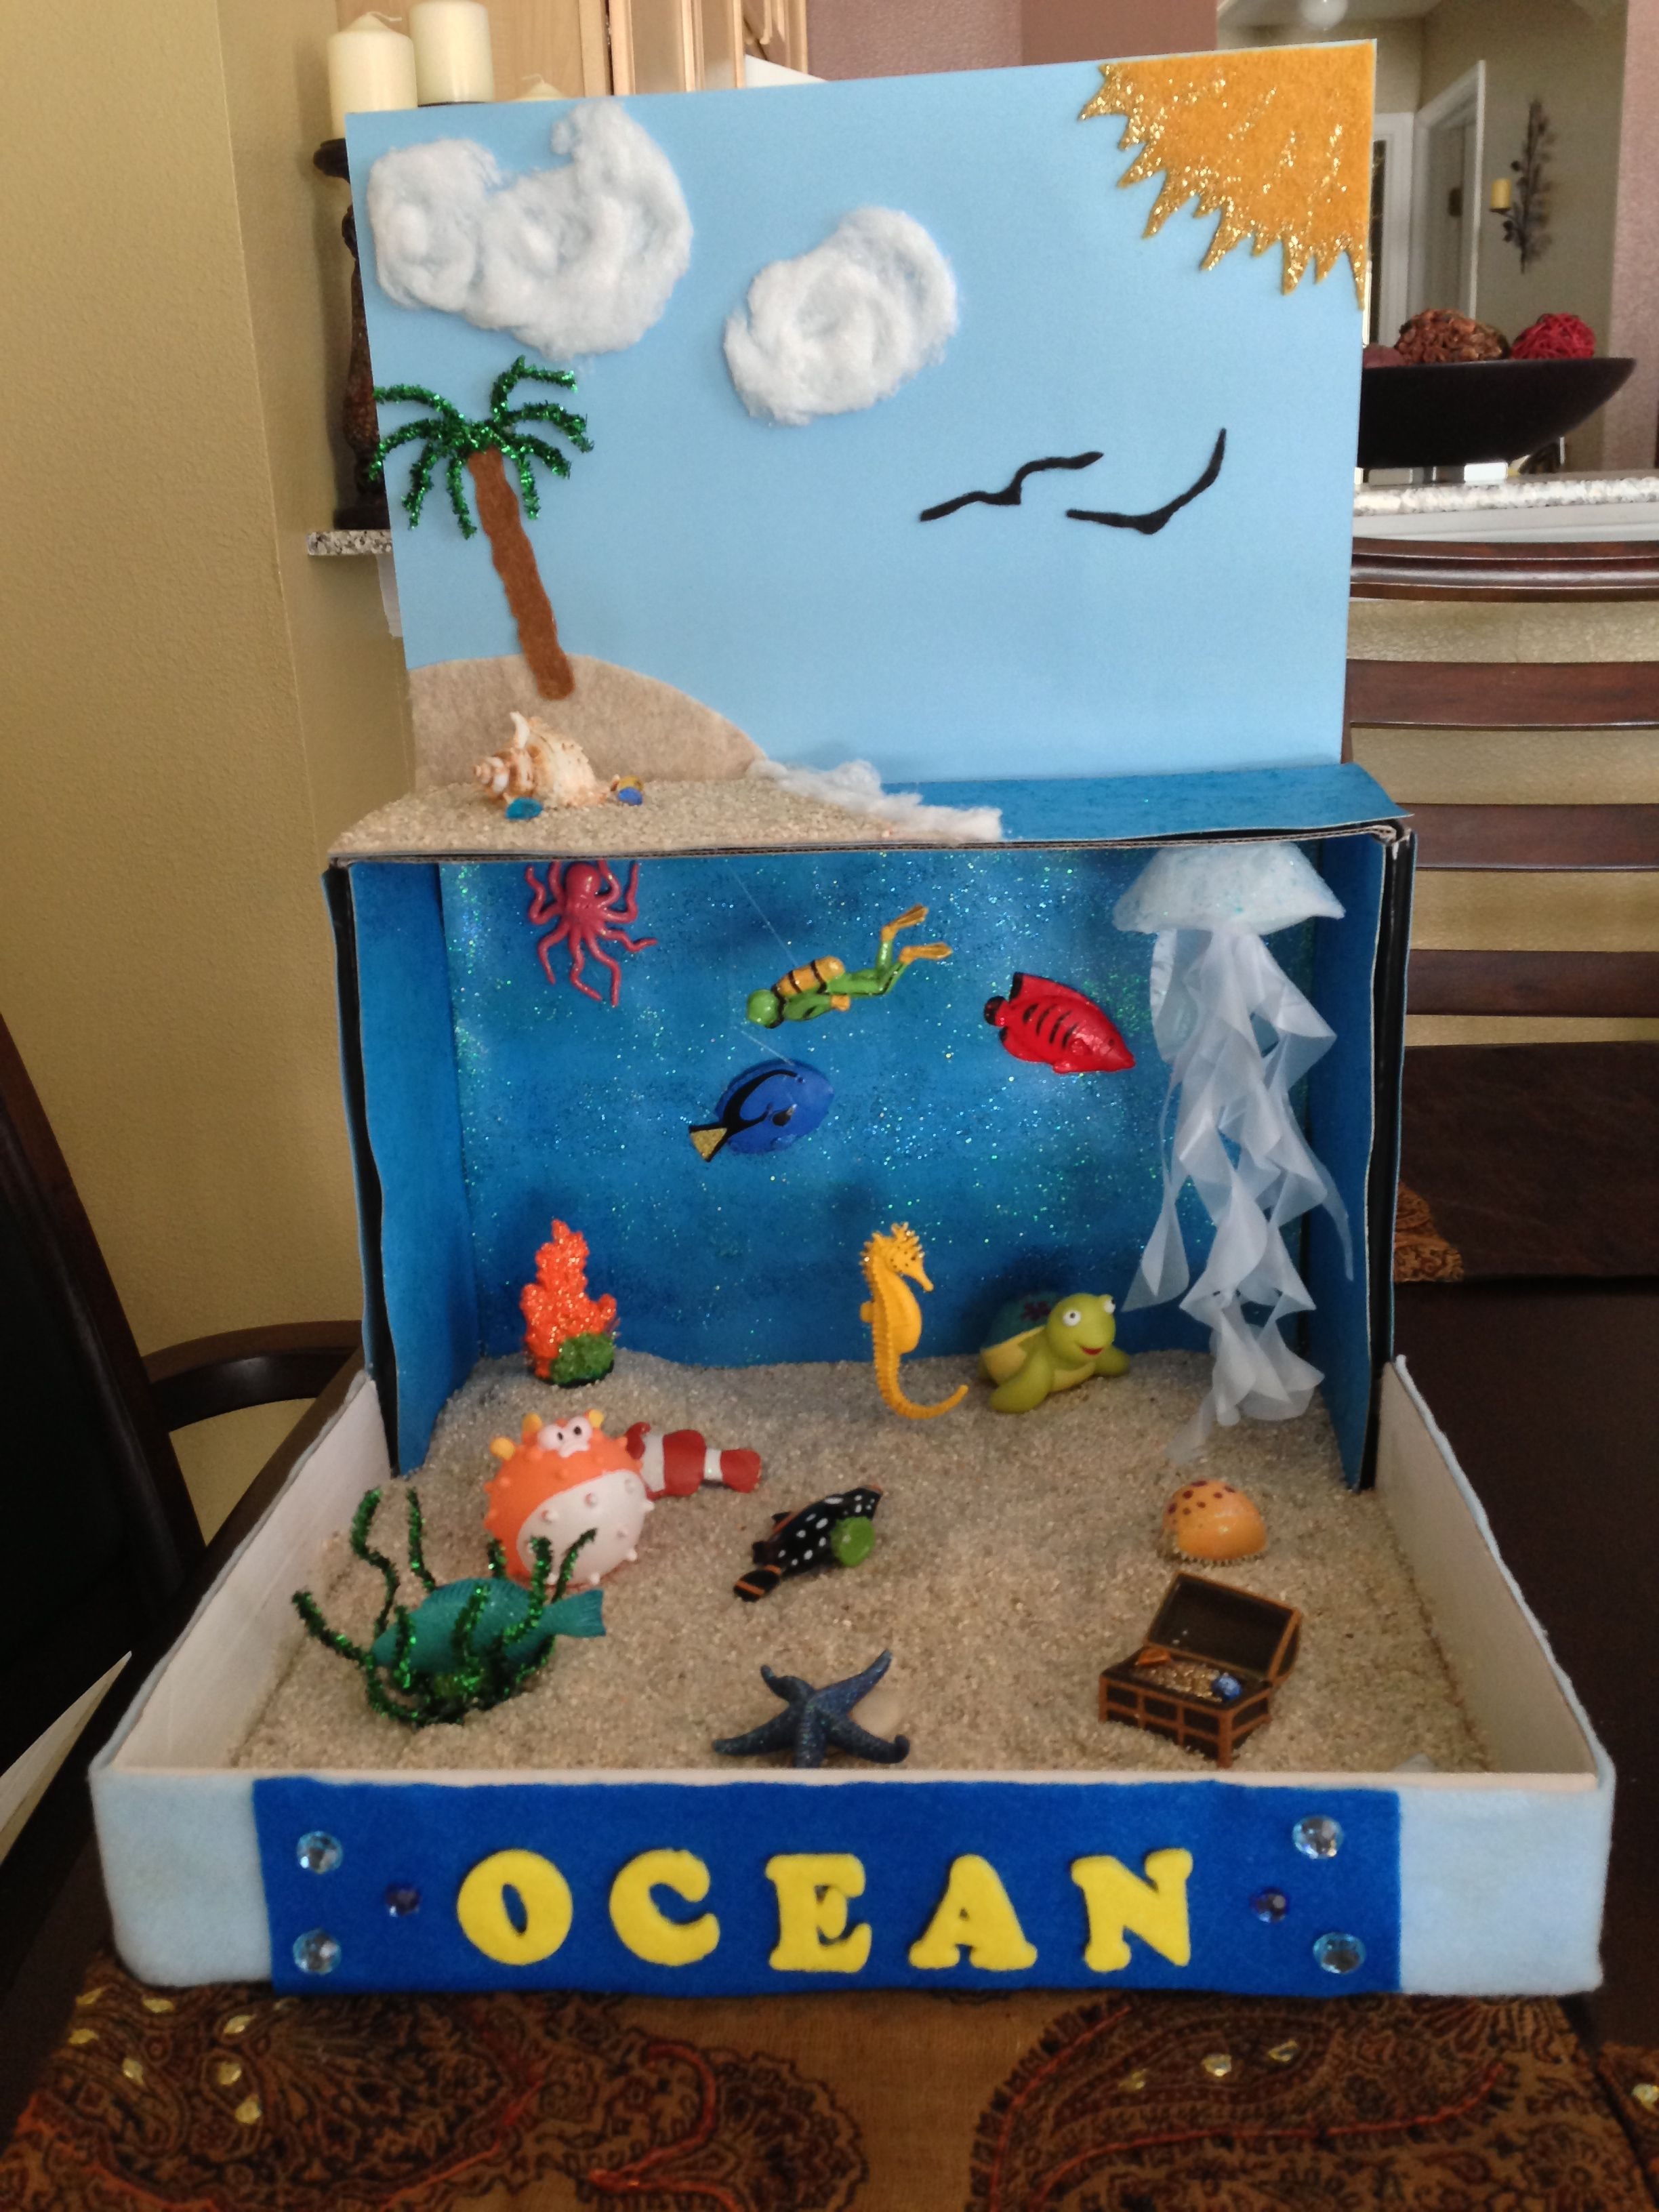 Ocean diorama for school project Idea for Henry 2nd